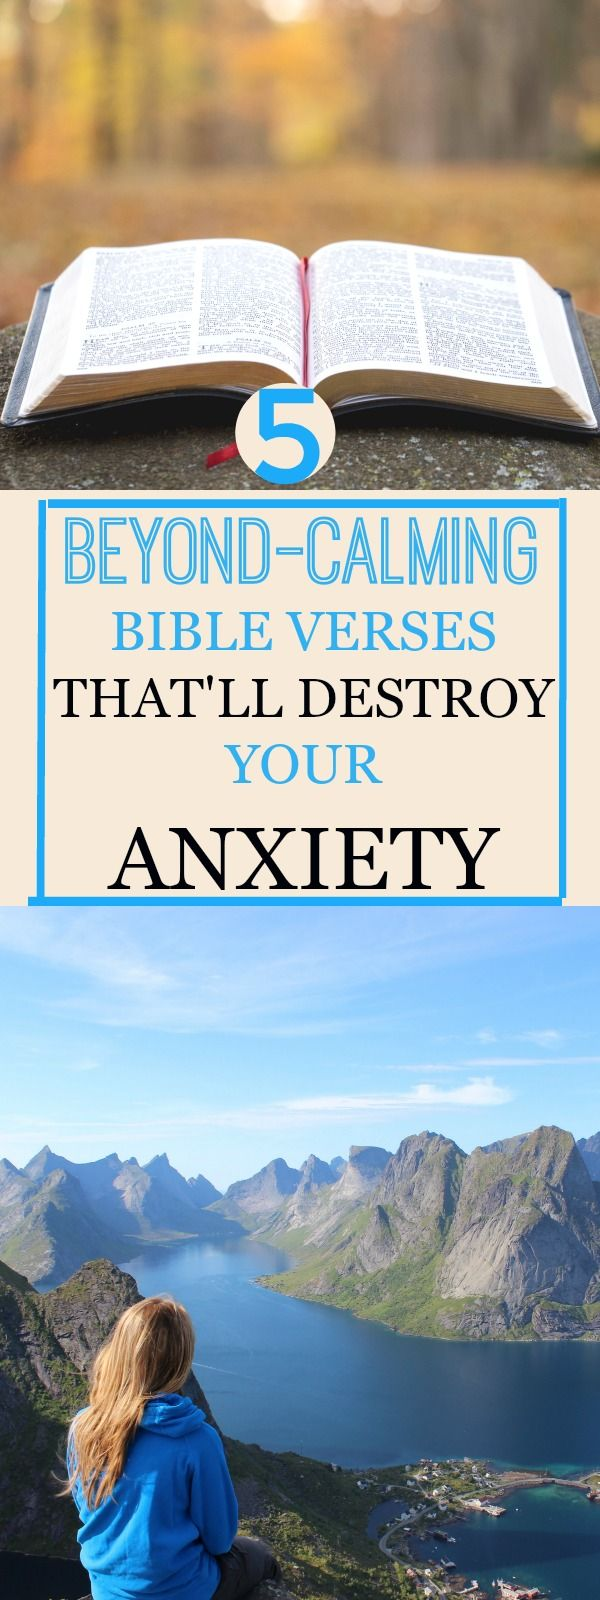 Totally LOVED these 5 Bible verses to take my anxiety away! They are SO much better than XANAX! I won't dare touch those anxiety pills again! I LOVE the Lord Jesus! Thank you for taking my anxiety and all my problems away! Glory to God! #anxiety #mentalhealth #health #LOVE #GOALS #Bibleverses